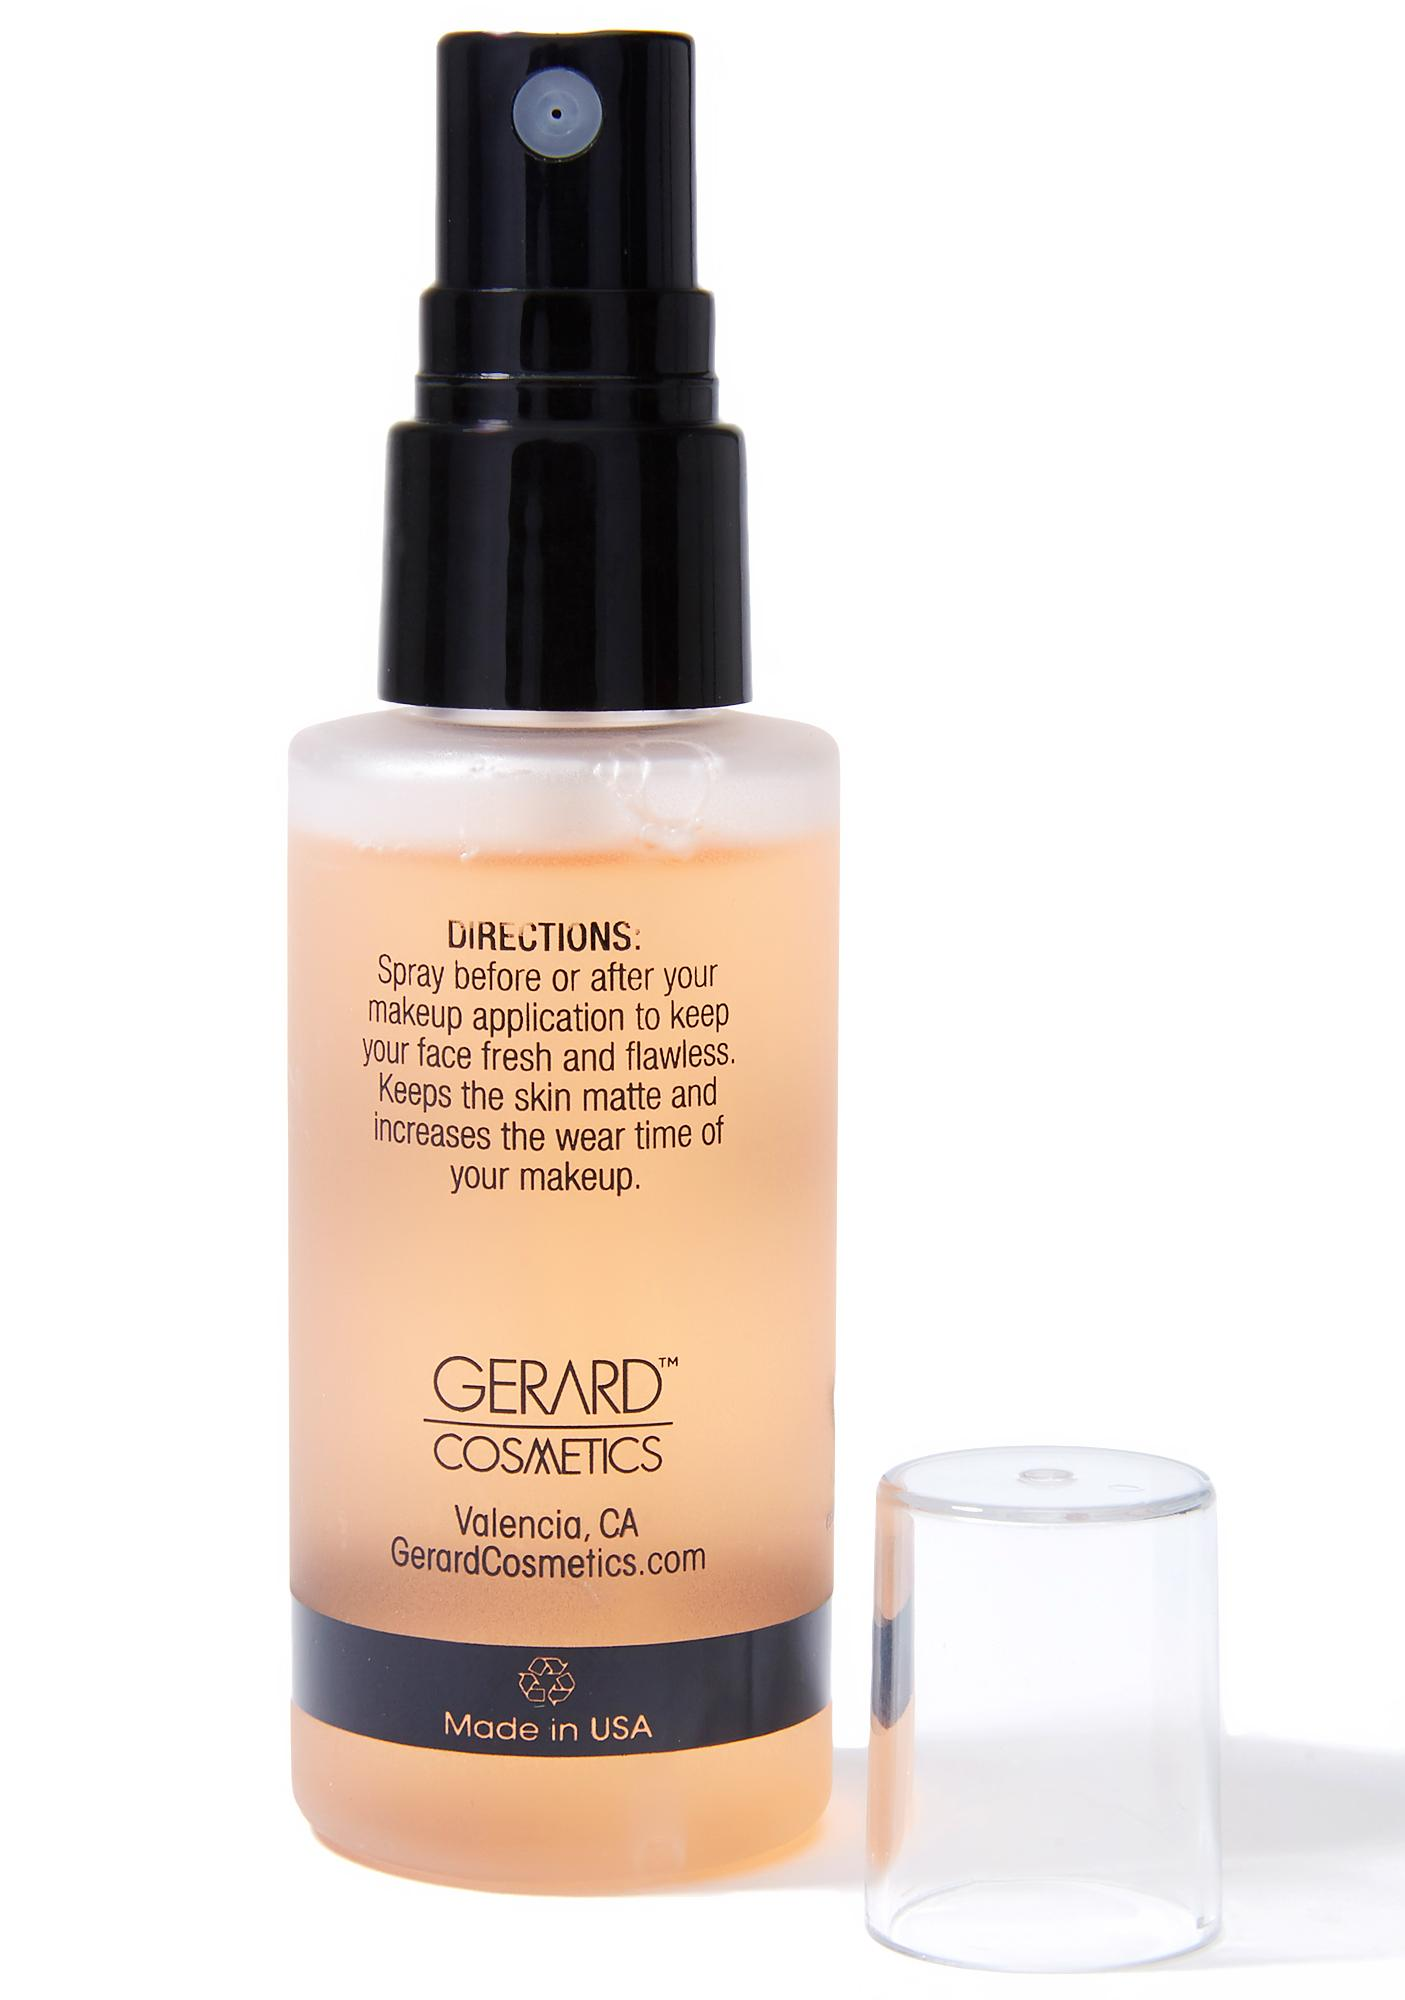 Gerard Cosmetics Peach Slay All Day Setting Spray